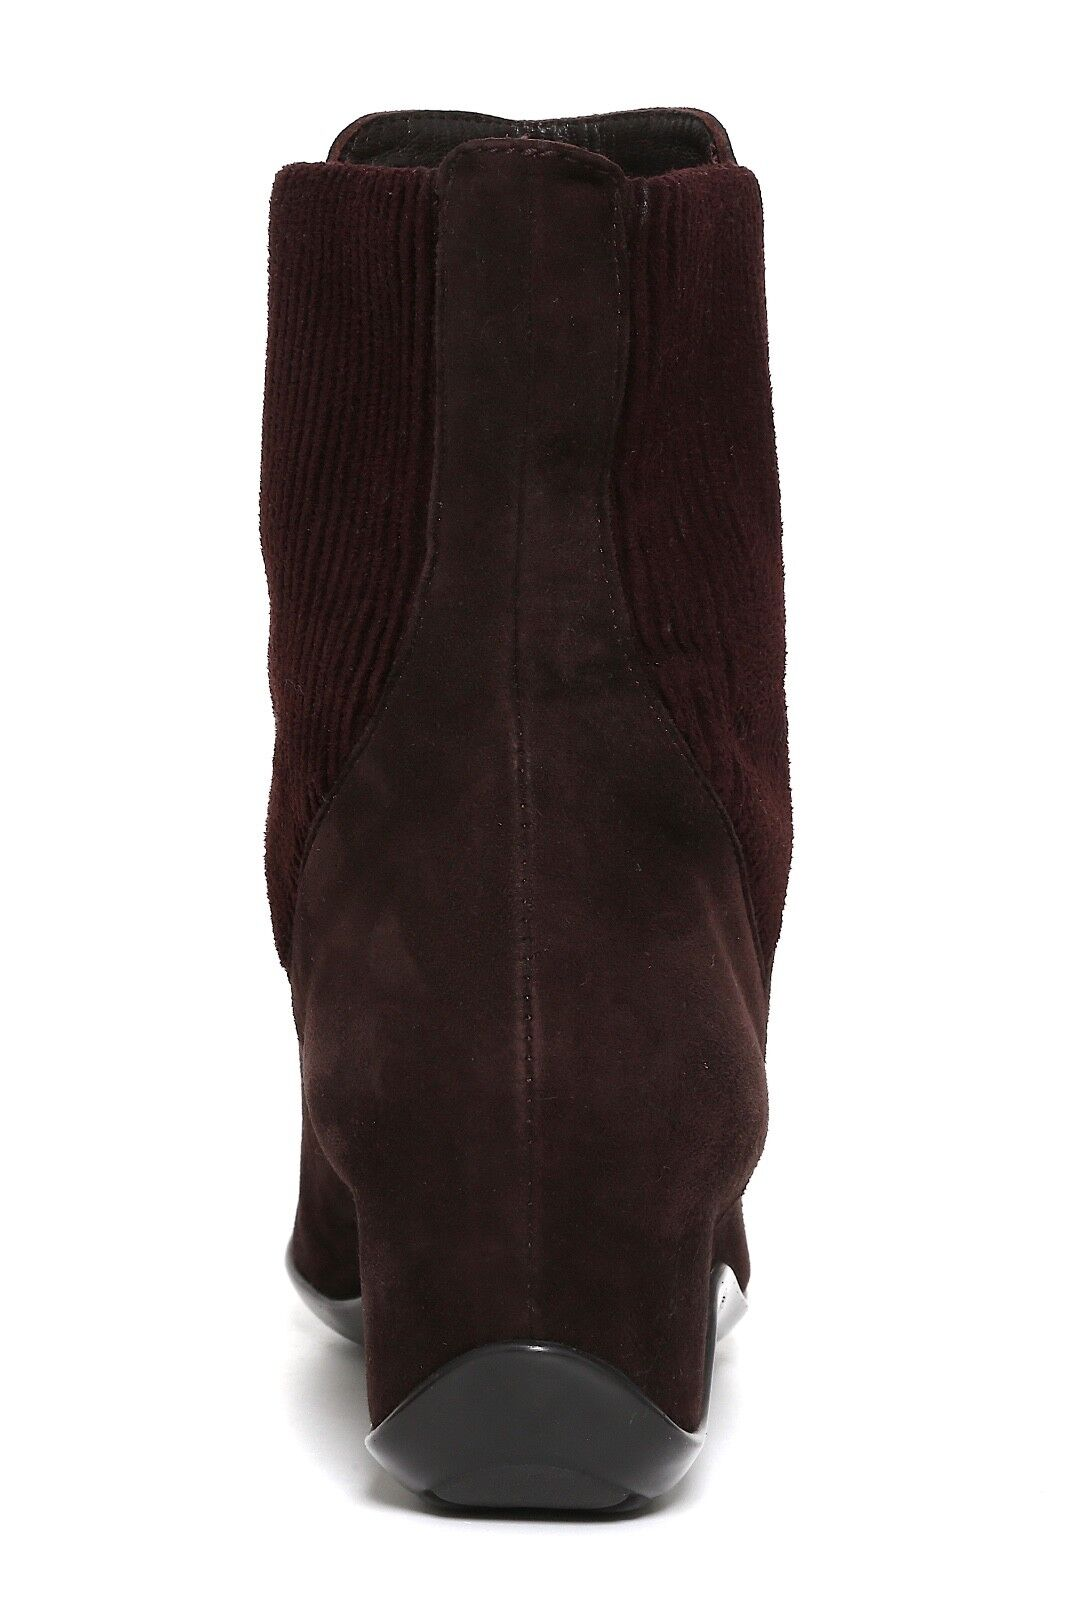 Aquatalia By Marvin Marvin Marvin K. Versus Suede Wedge Ankle Boot Brown Women Sz 8 5192  2c78f5